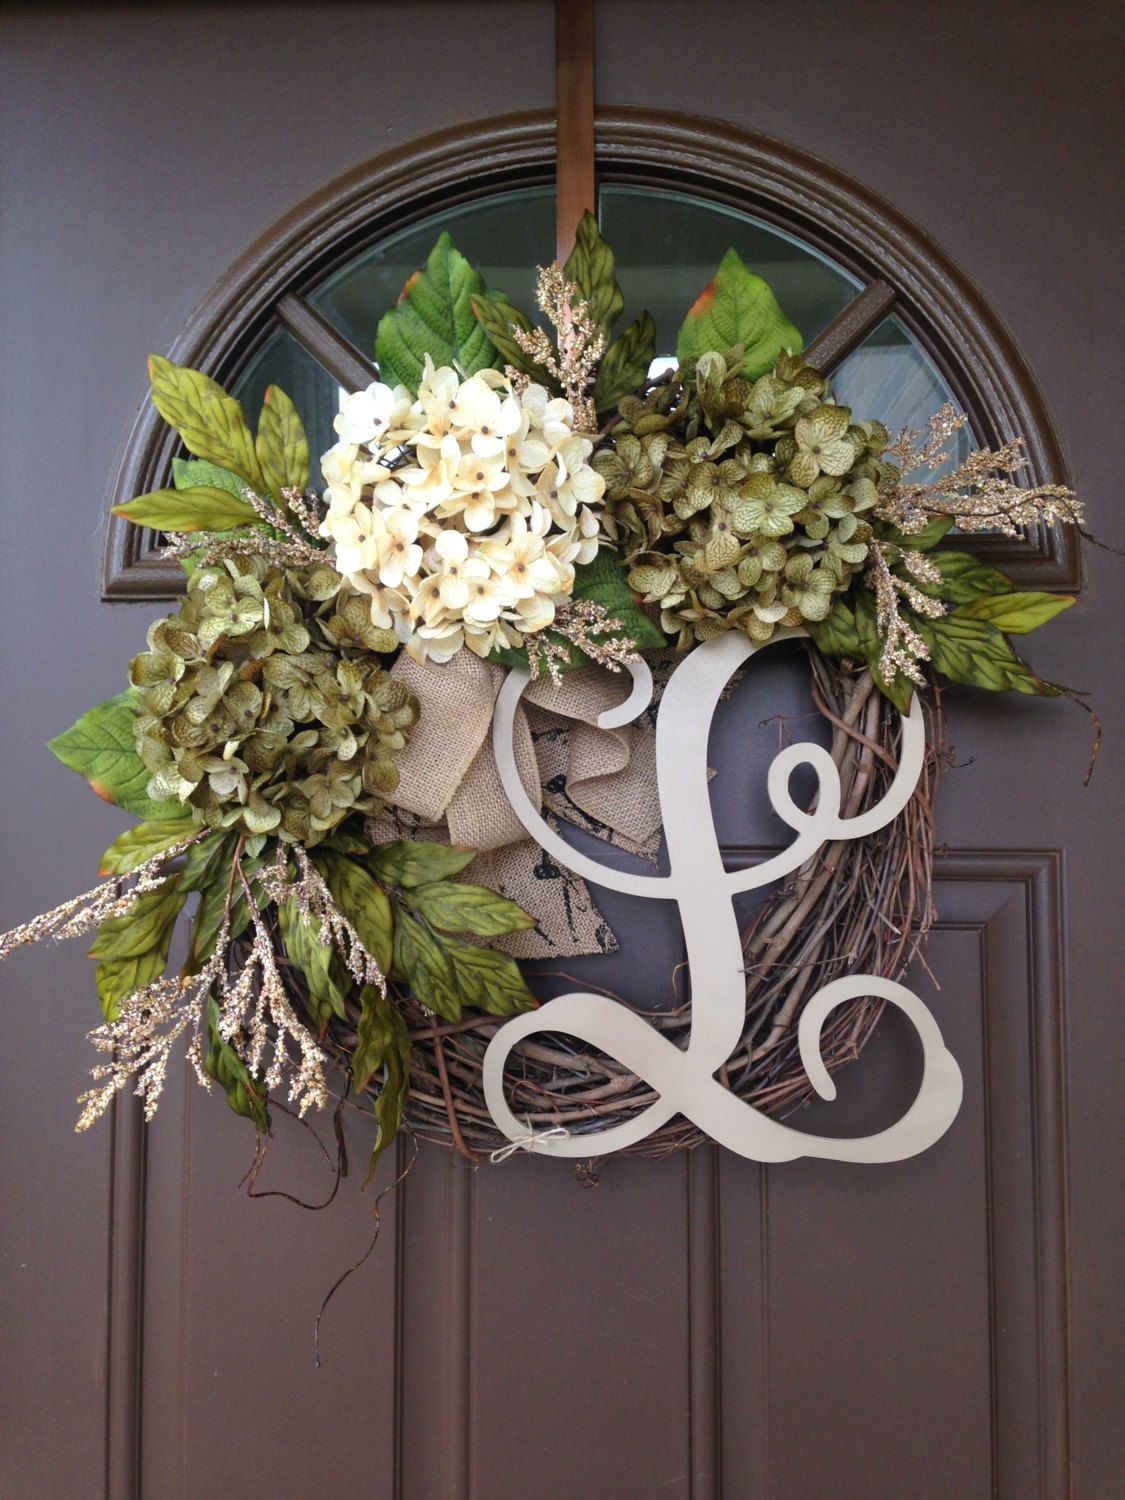 Year Round Hydrangea Wreath For Front Door   Monogrammed Wreath   Grapevine  Wreath With Initial   Front Door Wreath   Monogram Wreath   Gift